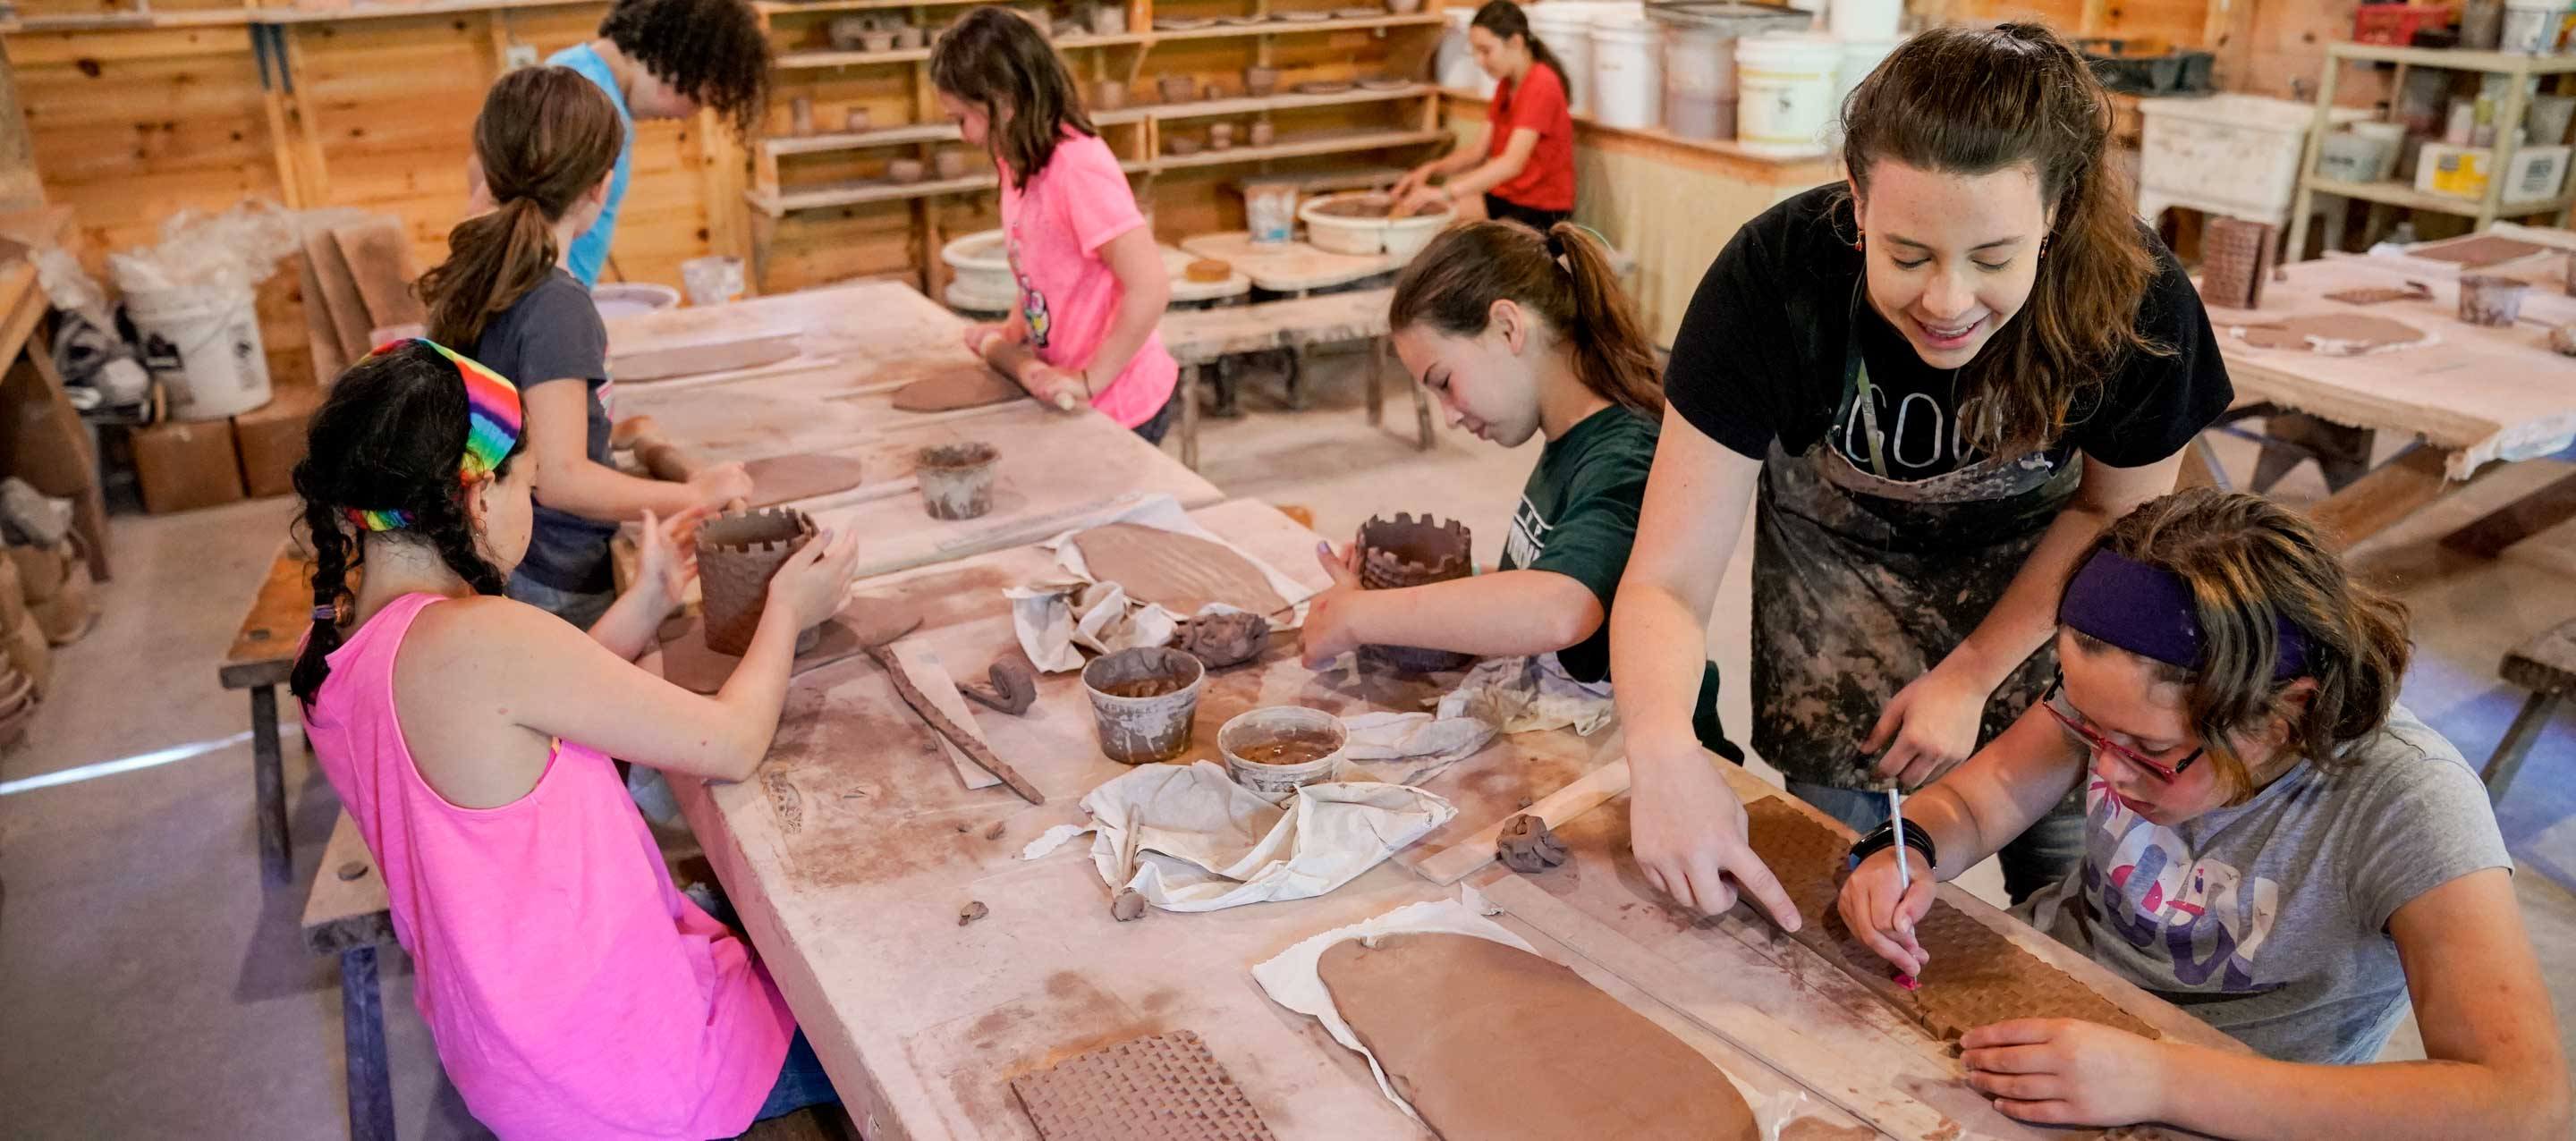 counselor helping a group of campers make ceramic creations